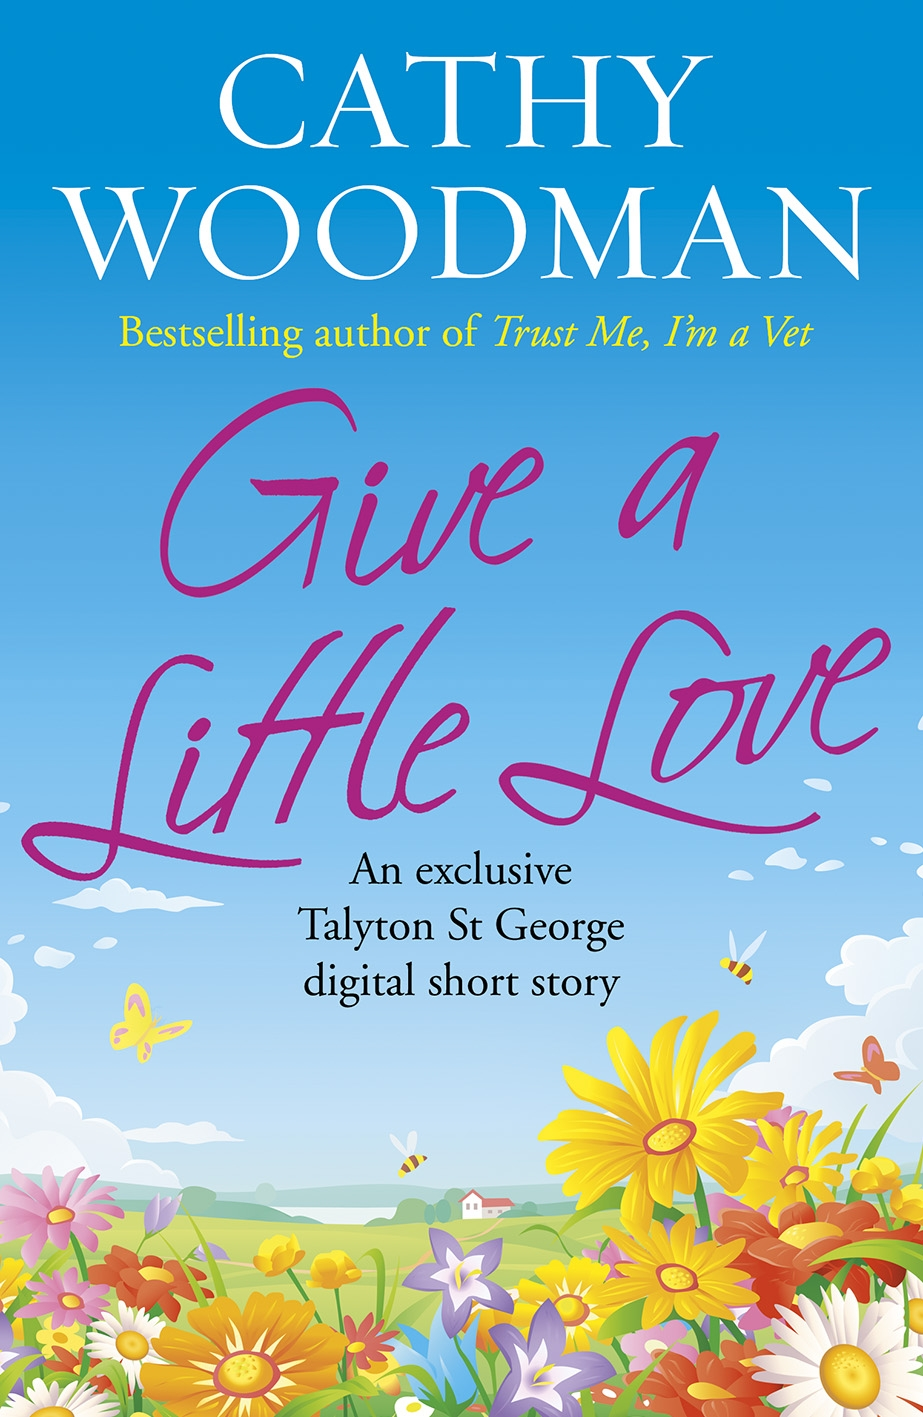 Give A Little Love By Cathy Woodman Penguin Books Australia border=